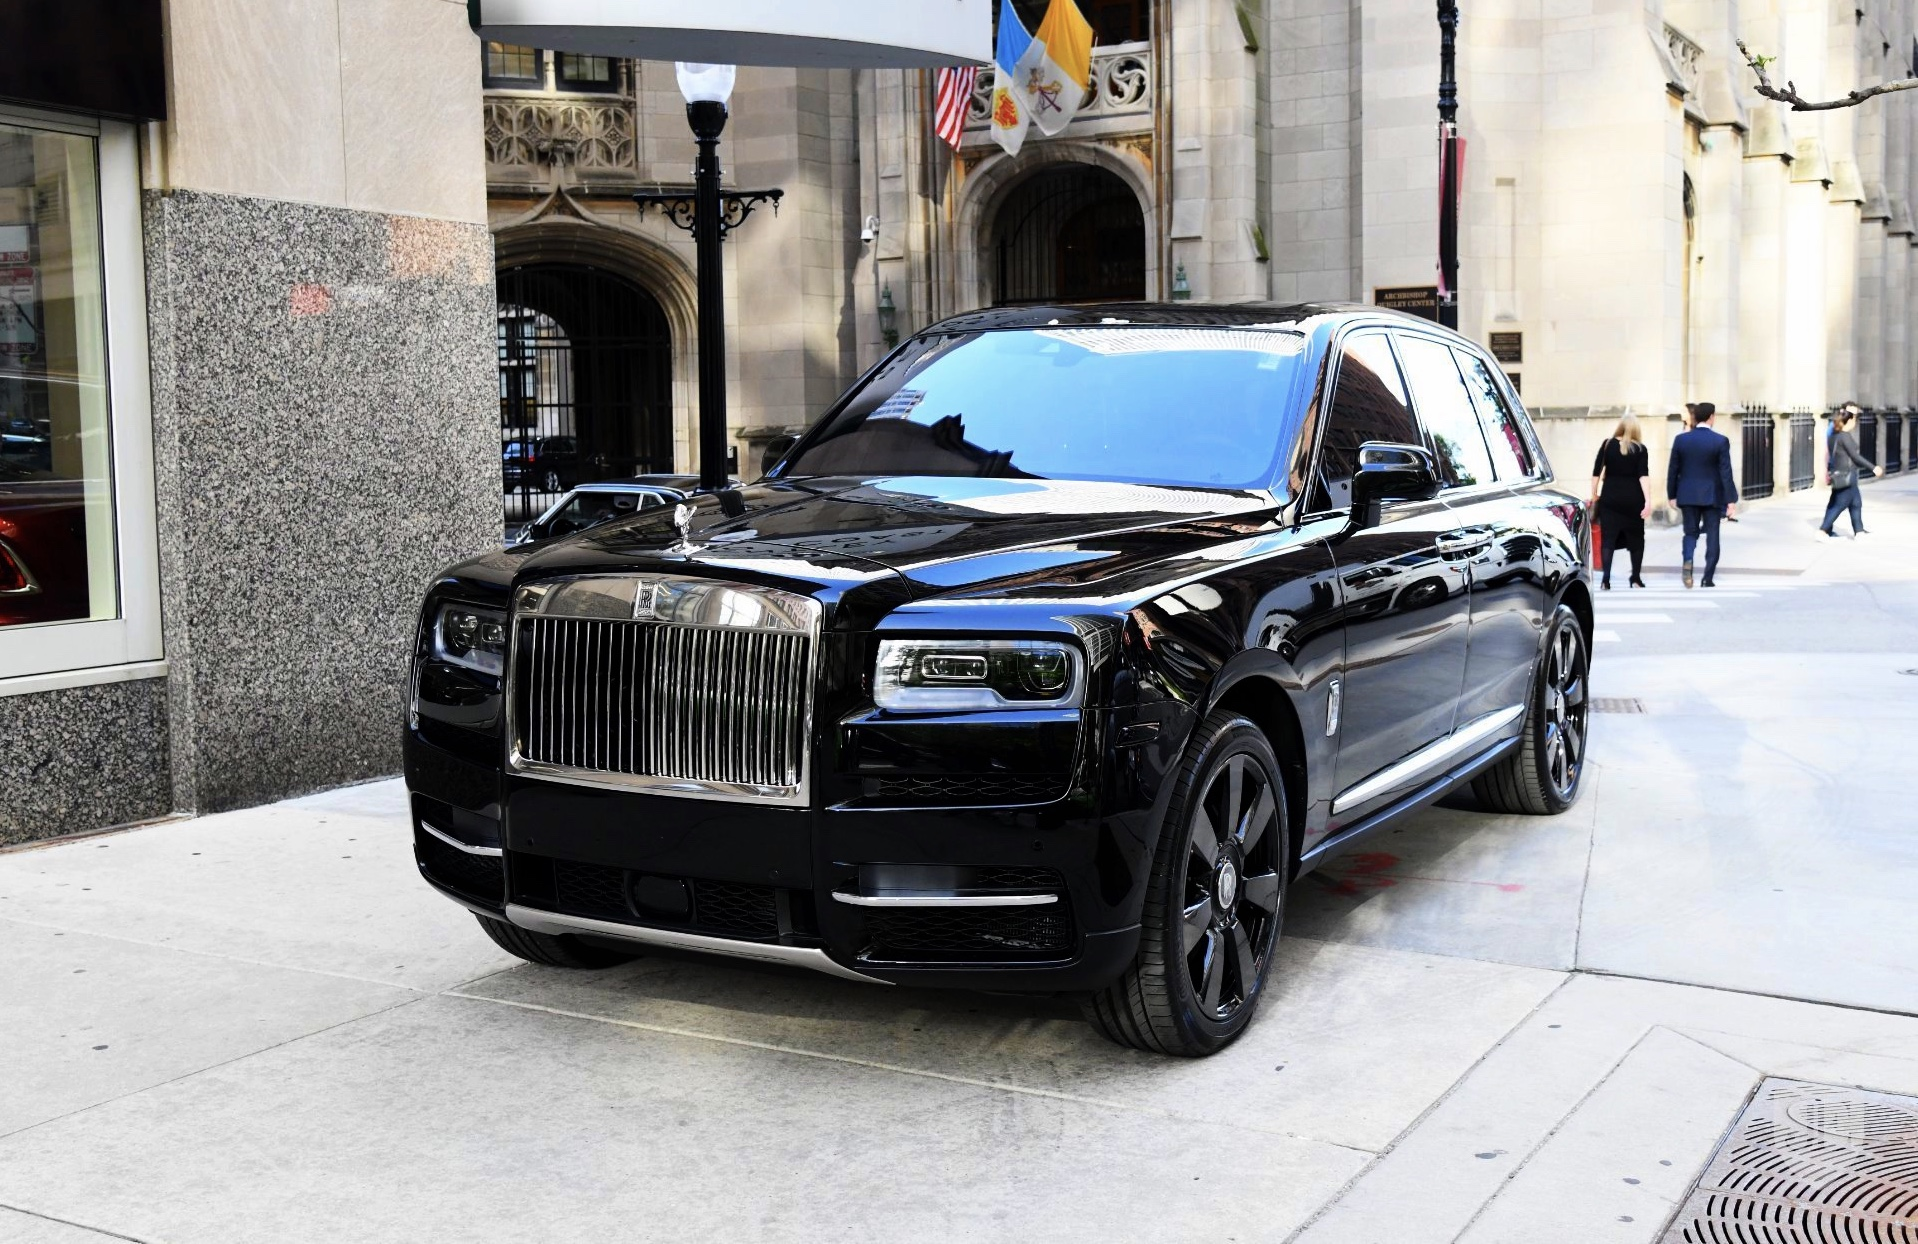 Luxury Chauffeured Rolls Royce SUV